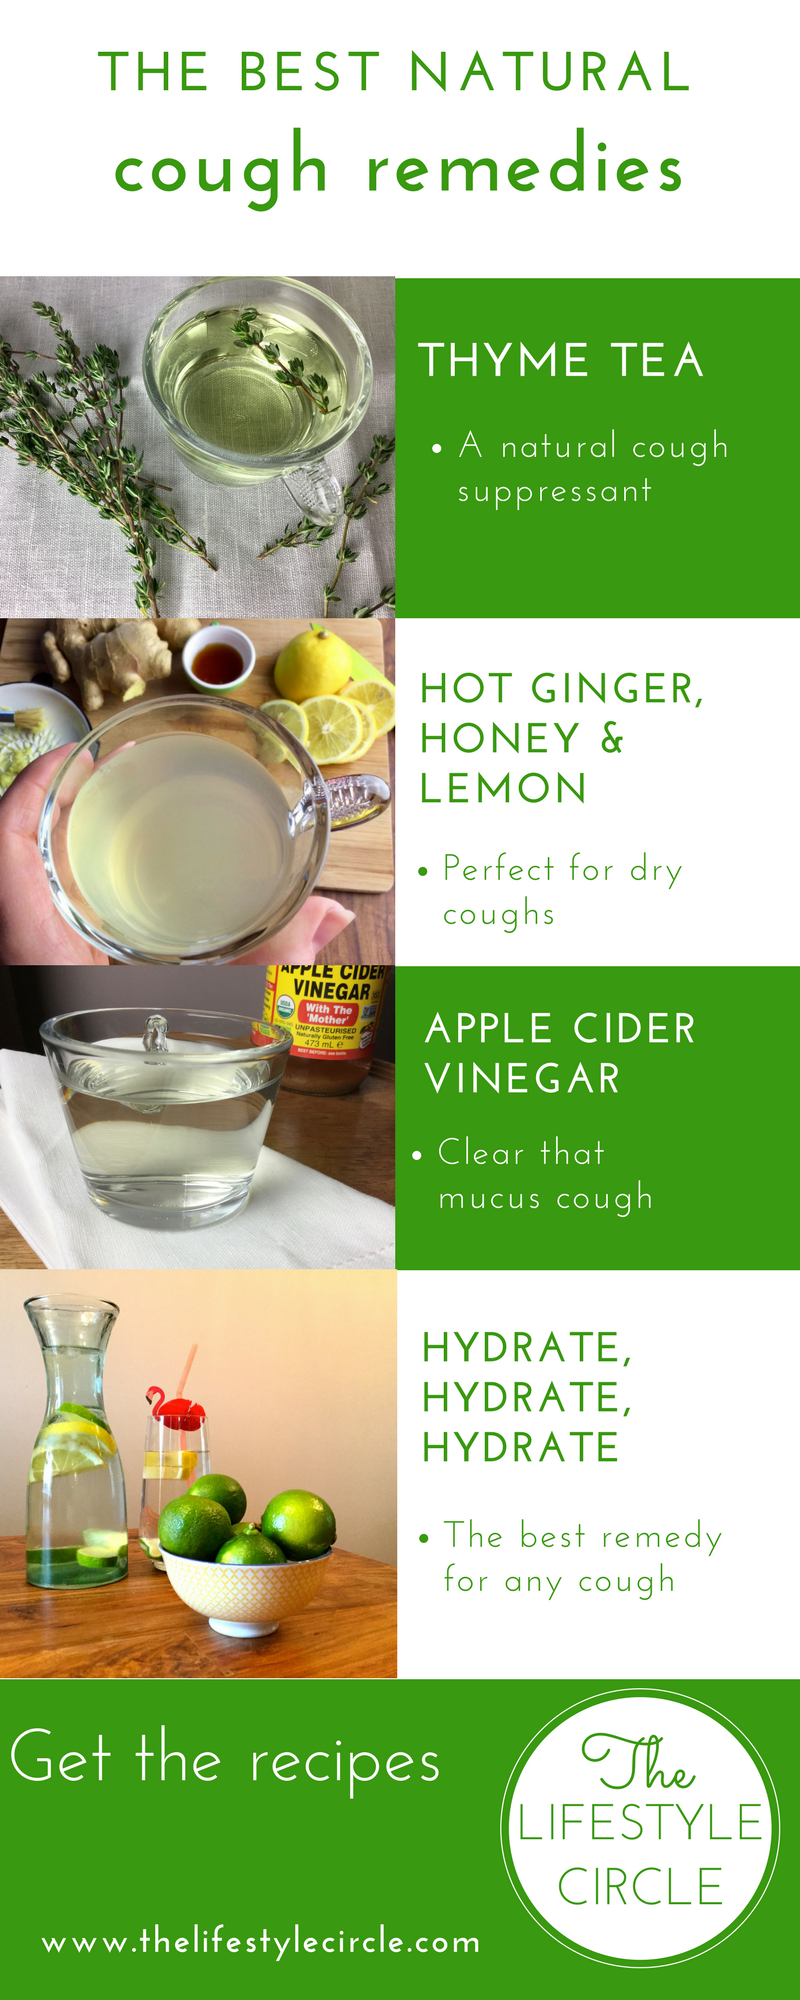 The best natural cough remedies Natural cough remedies